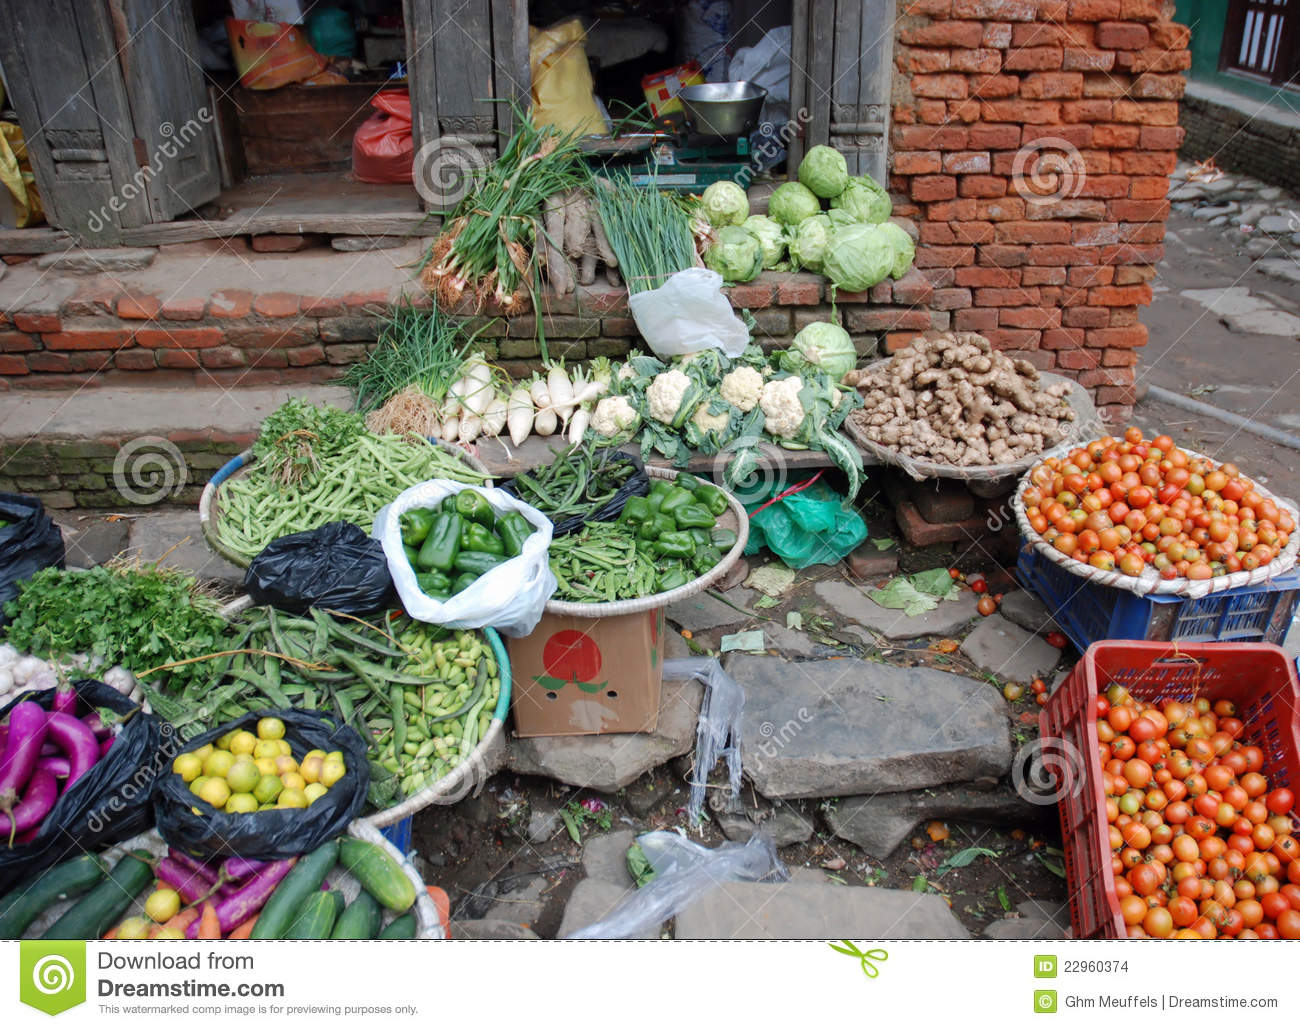 Display of local vegetables - fruit stall - Nepal